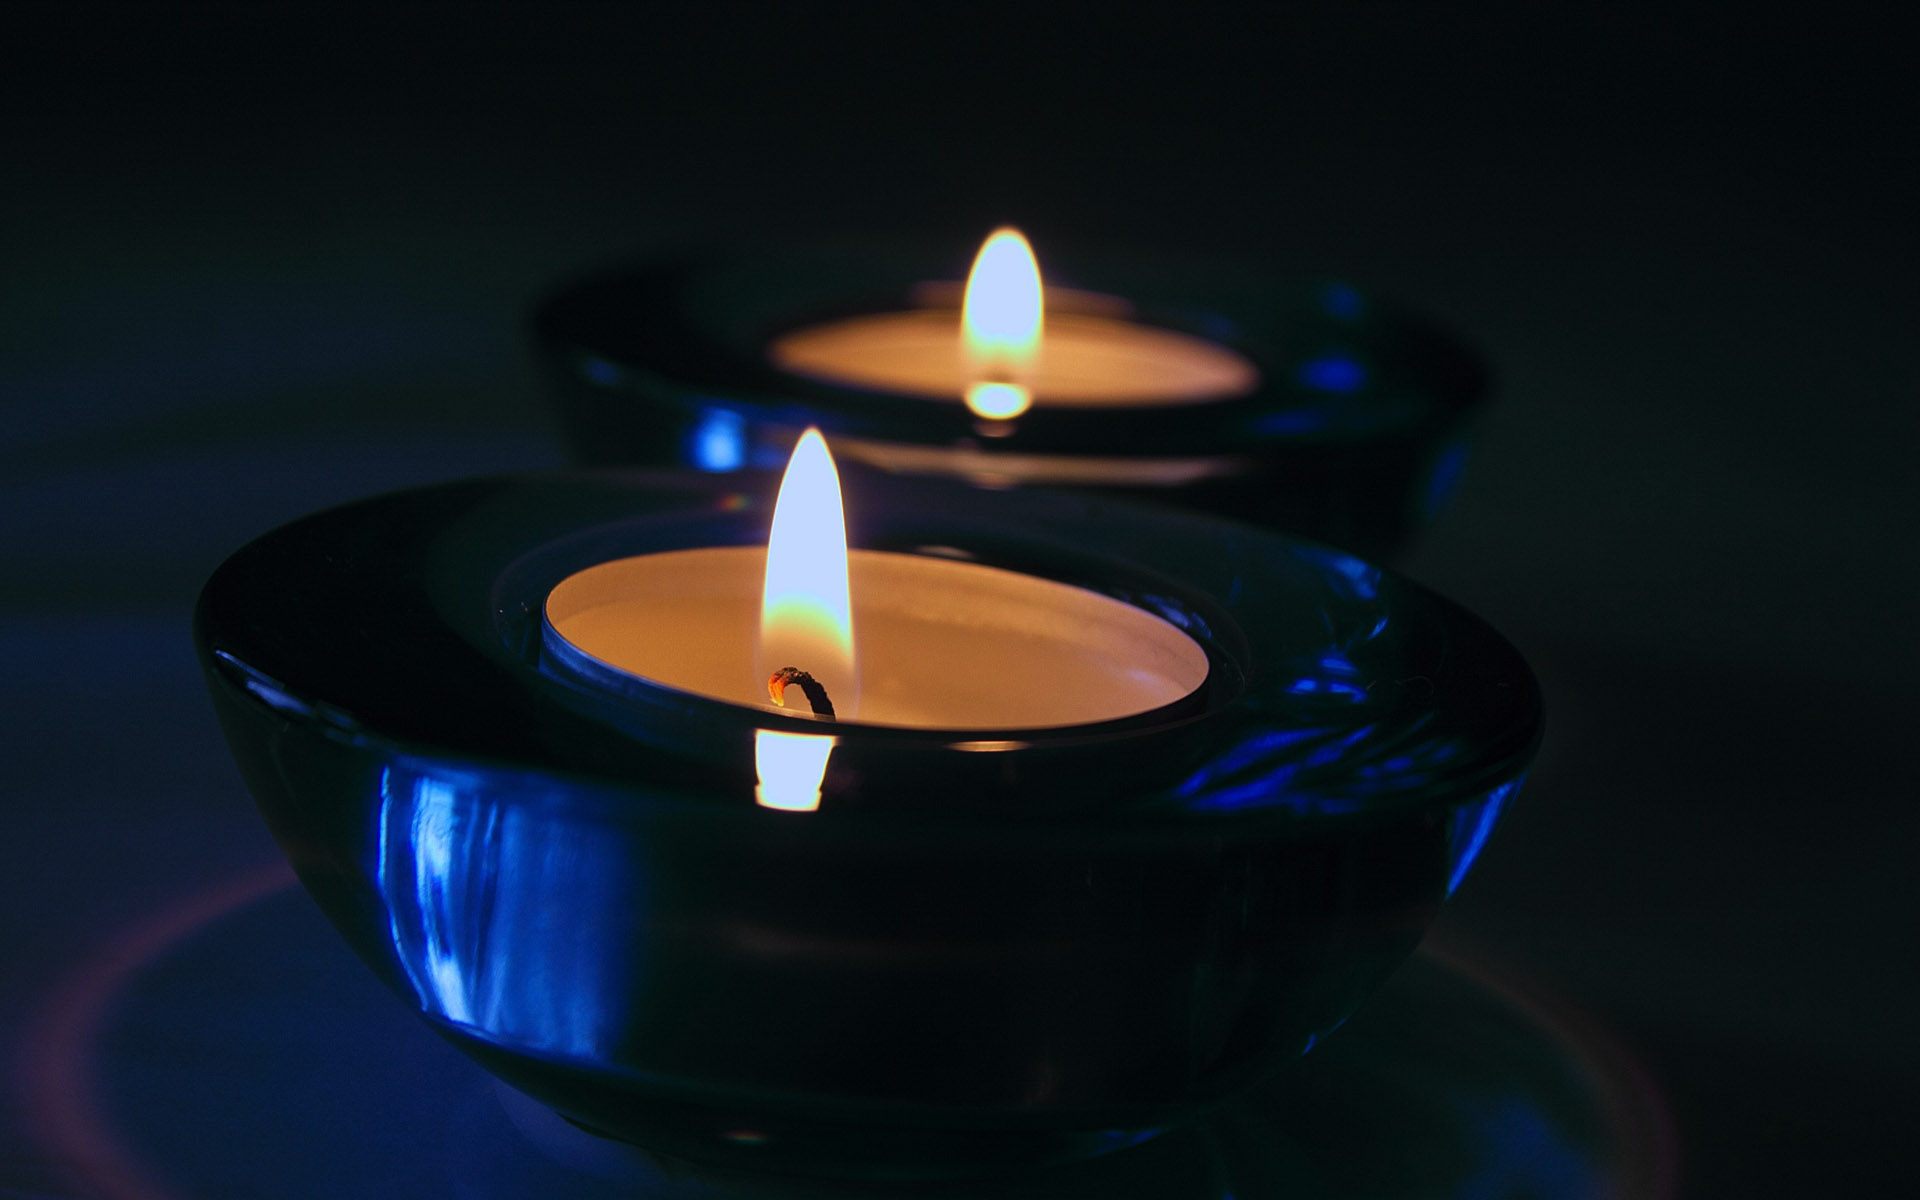 Candle wallpaper 3562